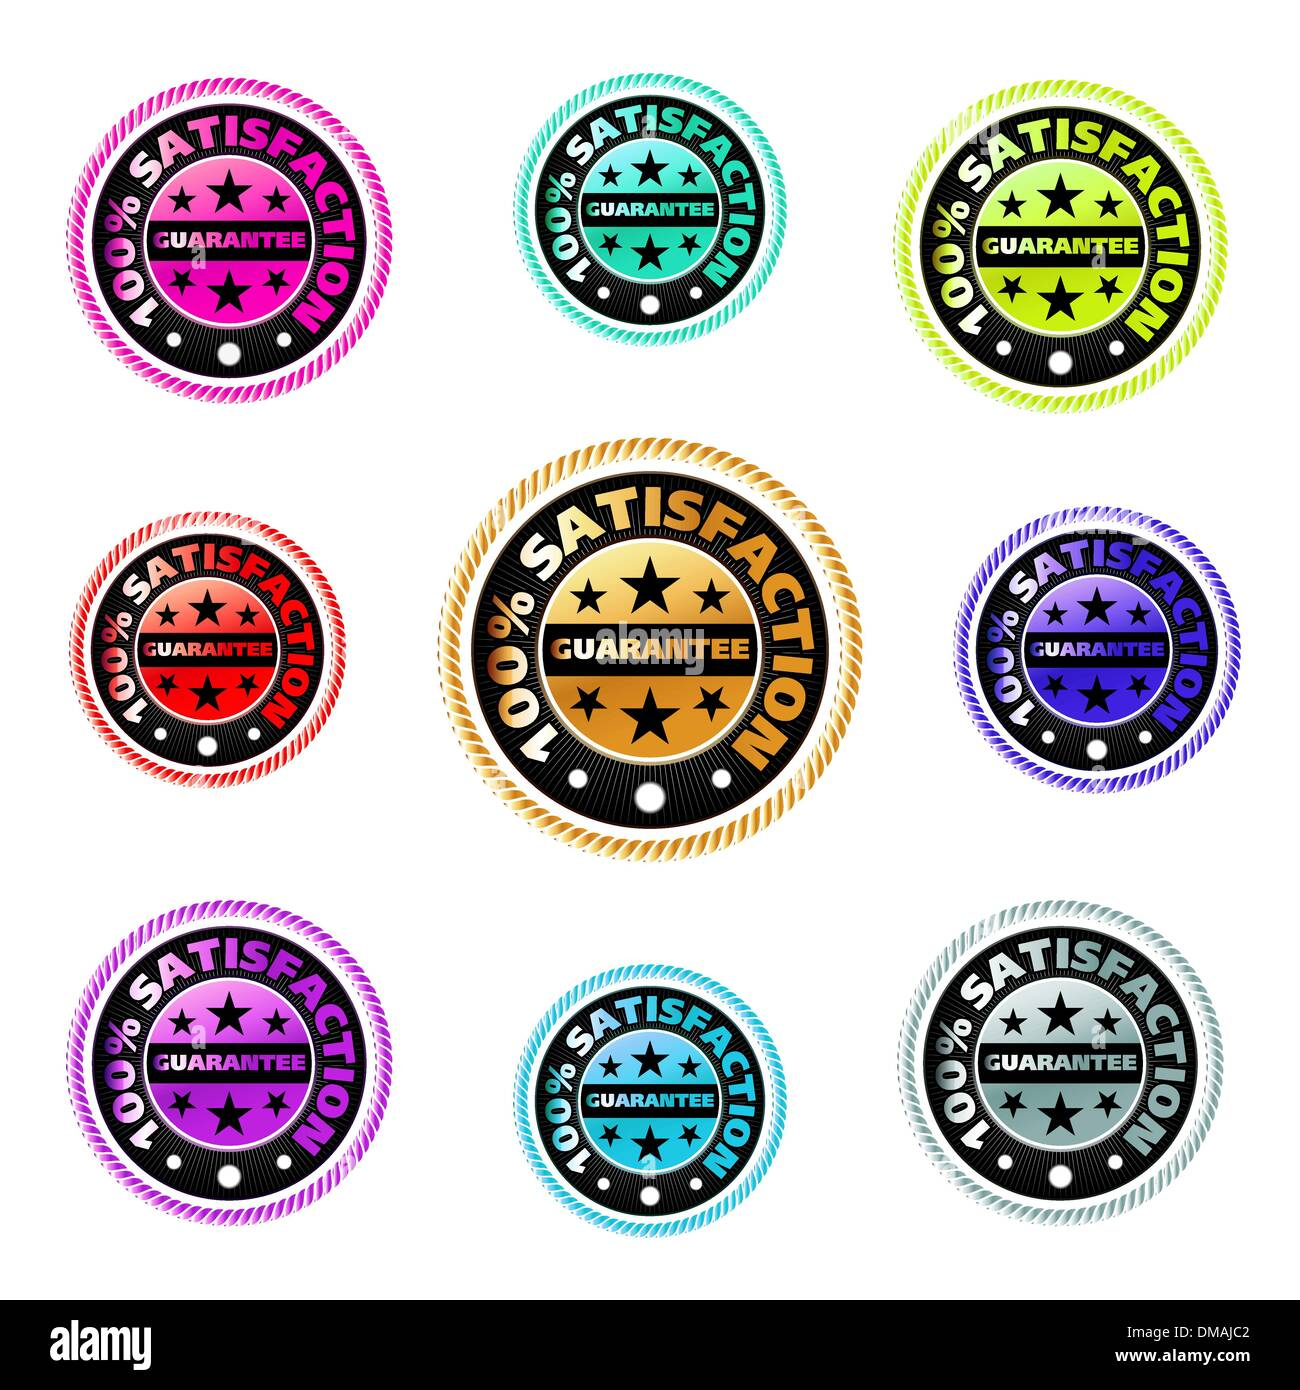 Set of Satisfaction guarantee labels. EPS 8 - Stock Image